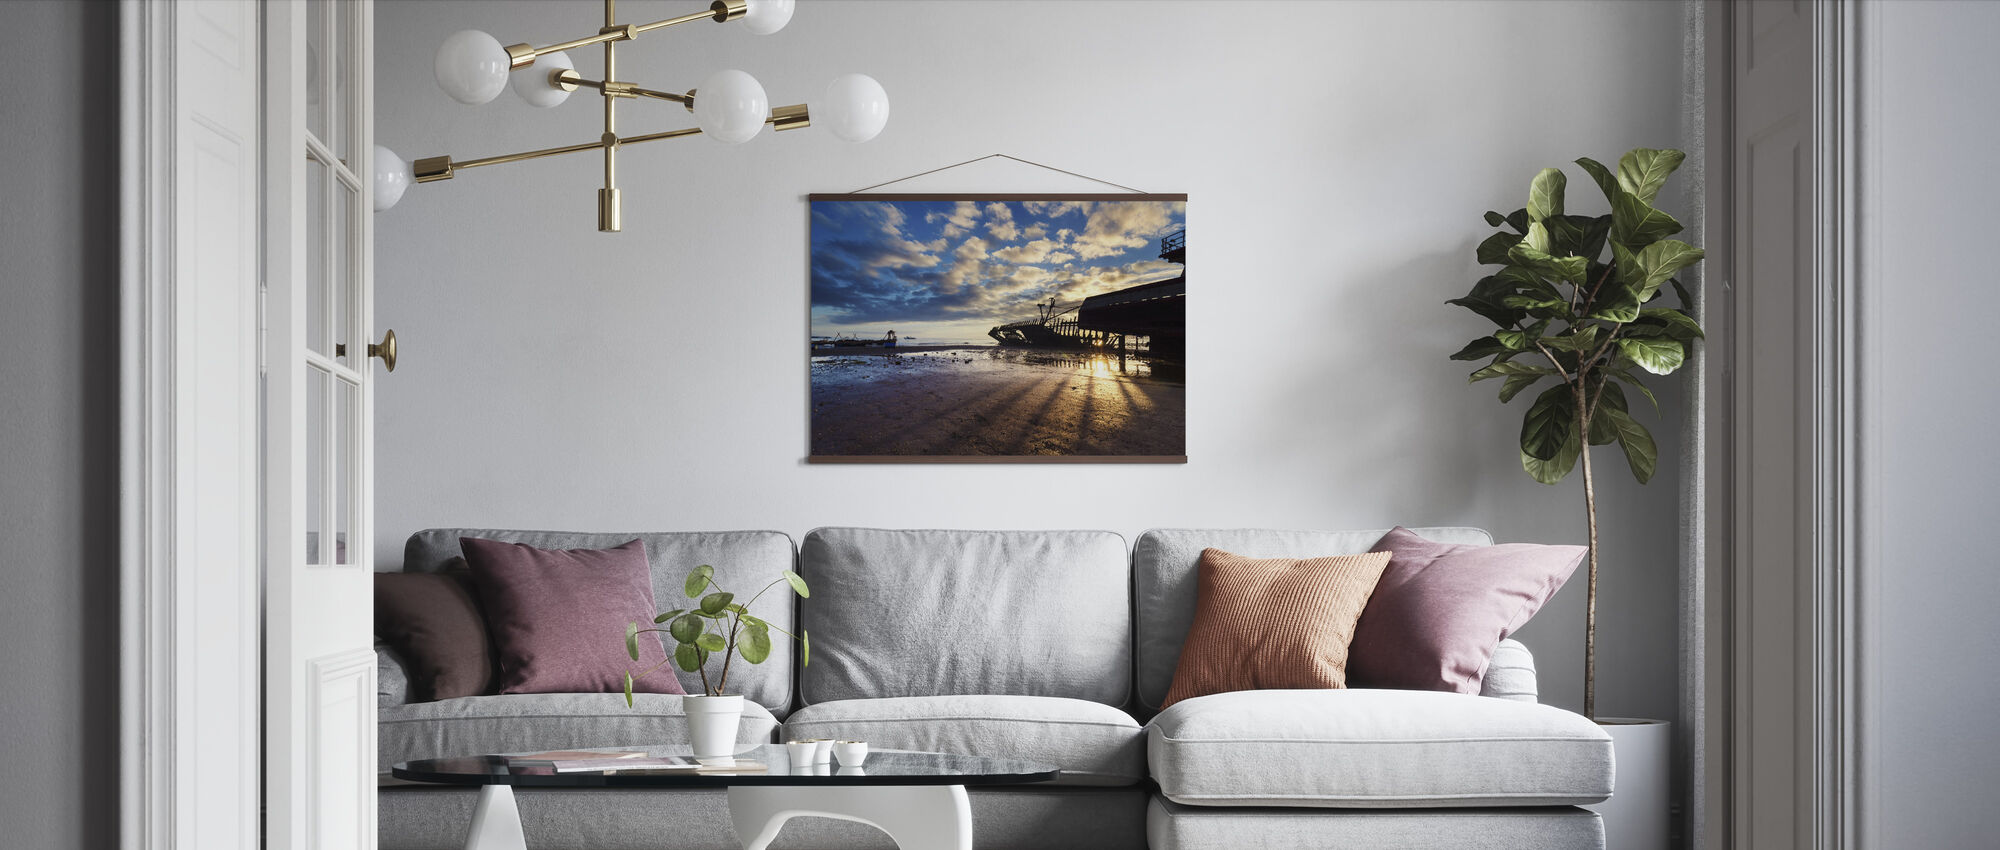 Shipwreck Silhouettes and Sunrise - Poster - Living Room